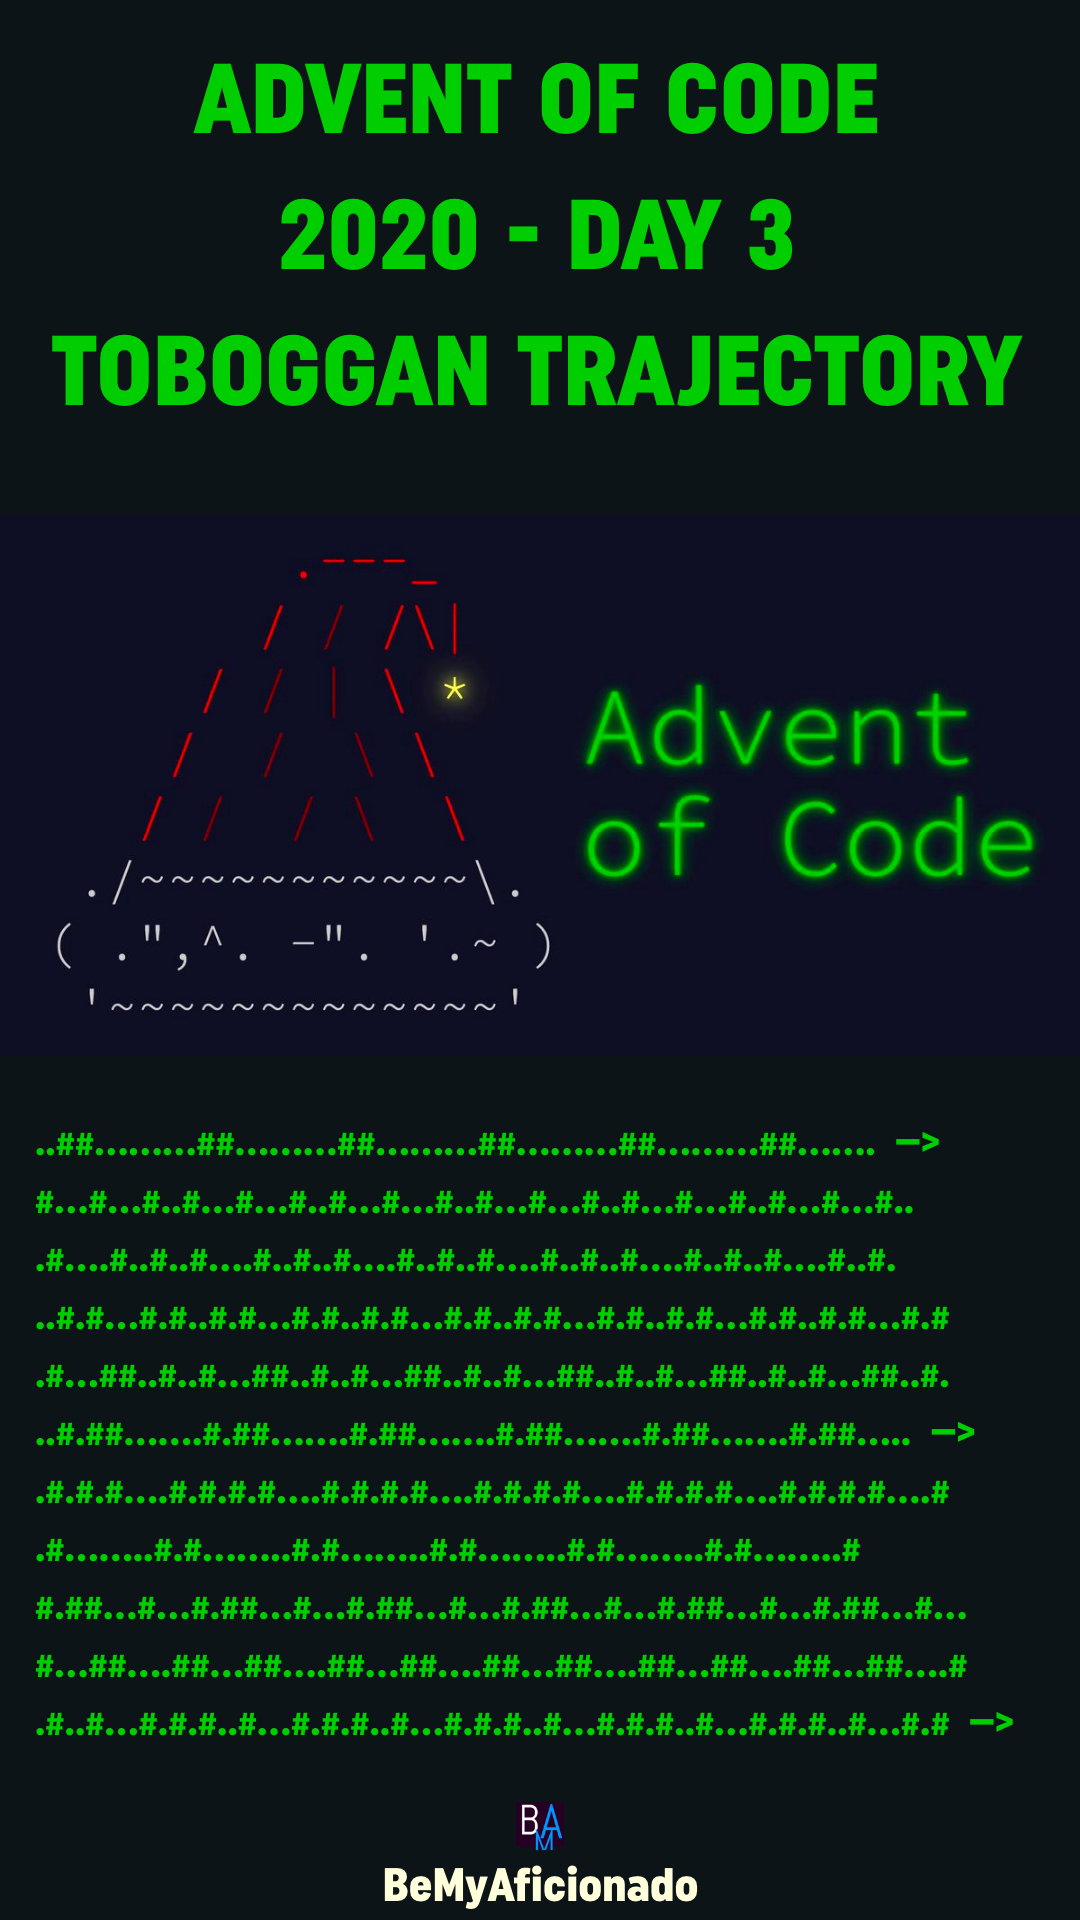 Advent of Code 2020 - DAY 3